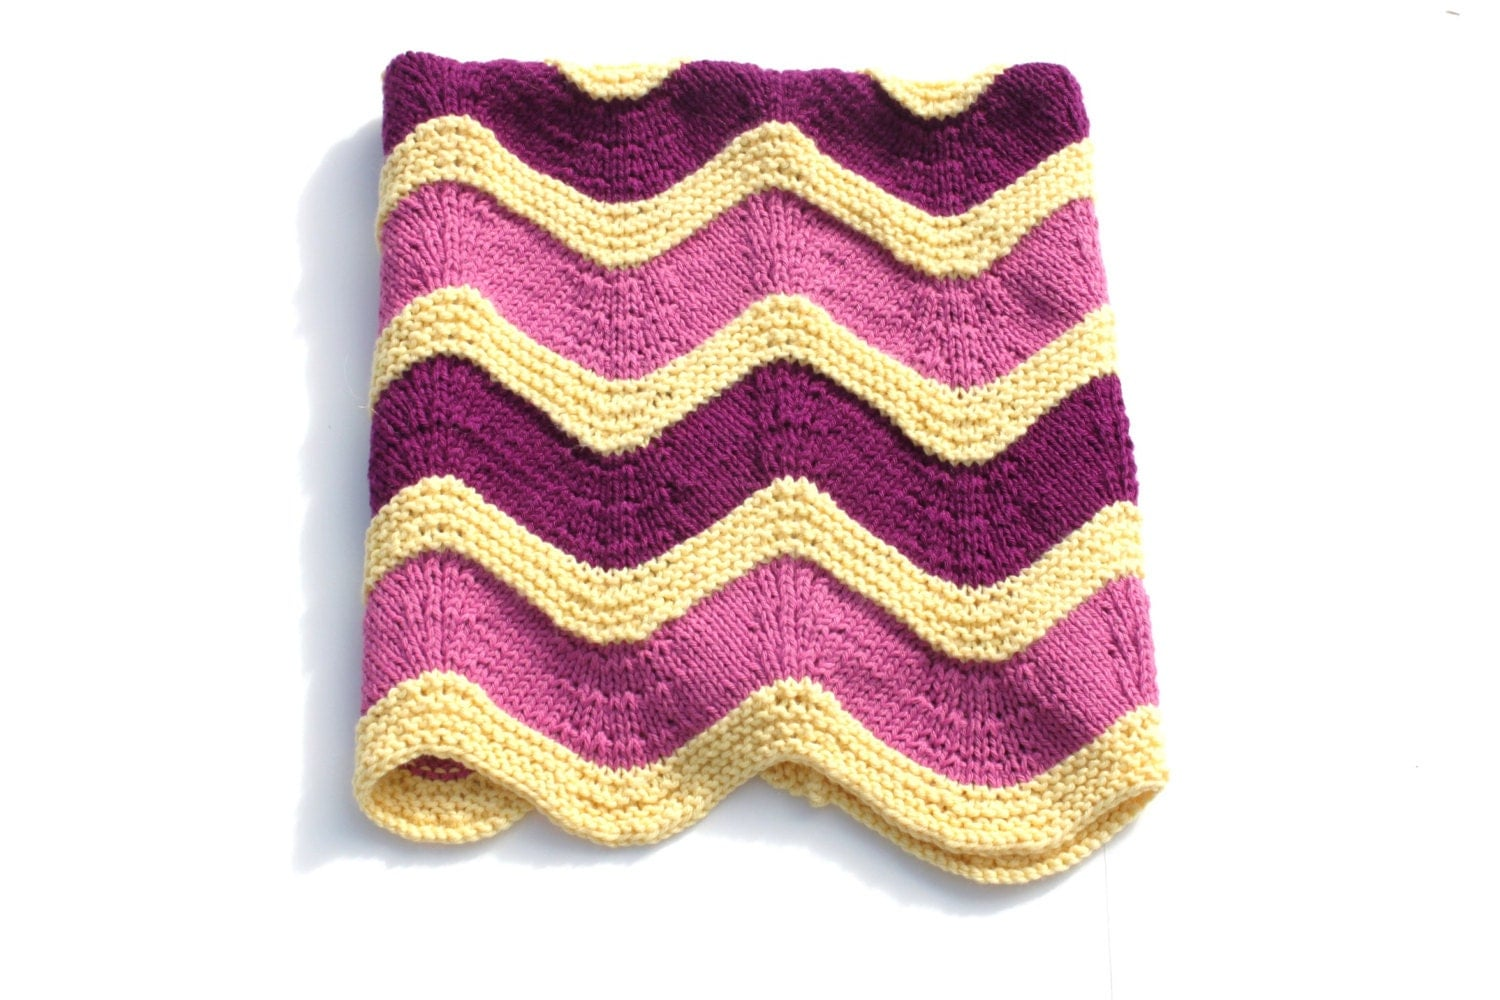 Knit Baby Blanket Wave Pattern : Zoom Baby Blanket Pattern knit baby blanket pattern using